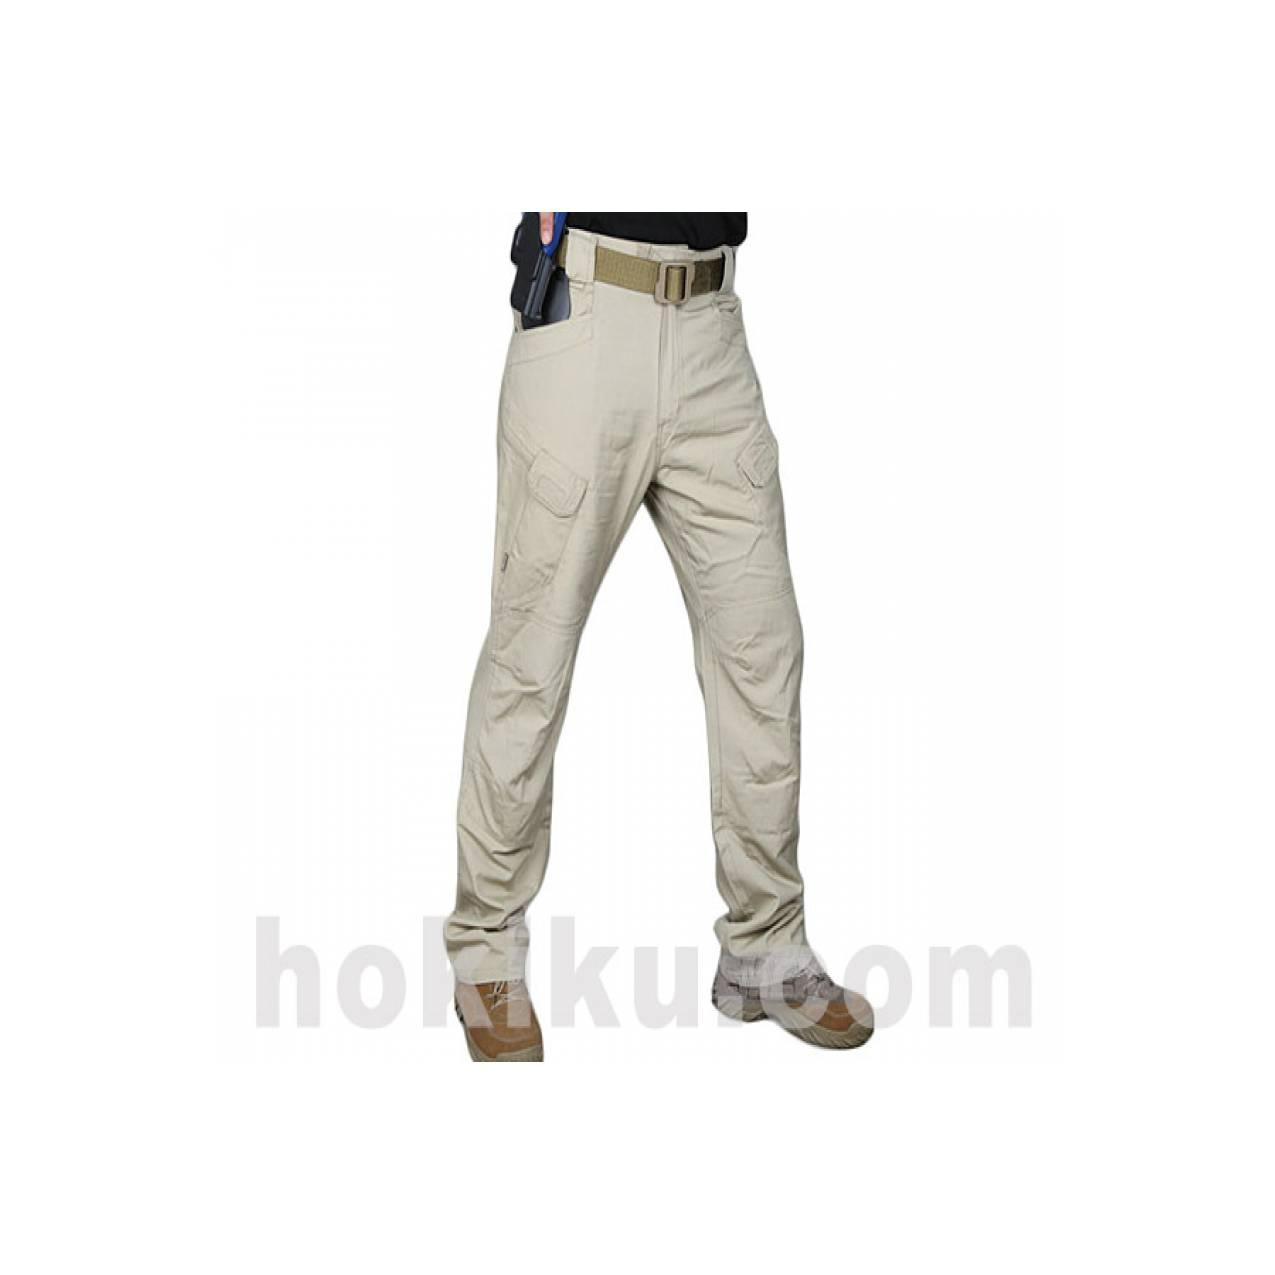 EMERSON UTL Urban Tactical Pants - Khaki